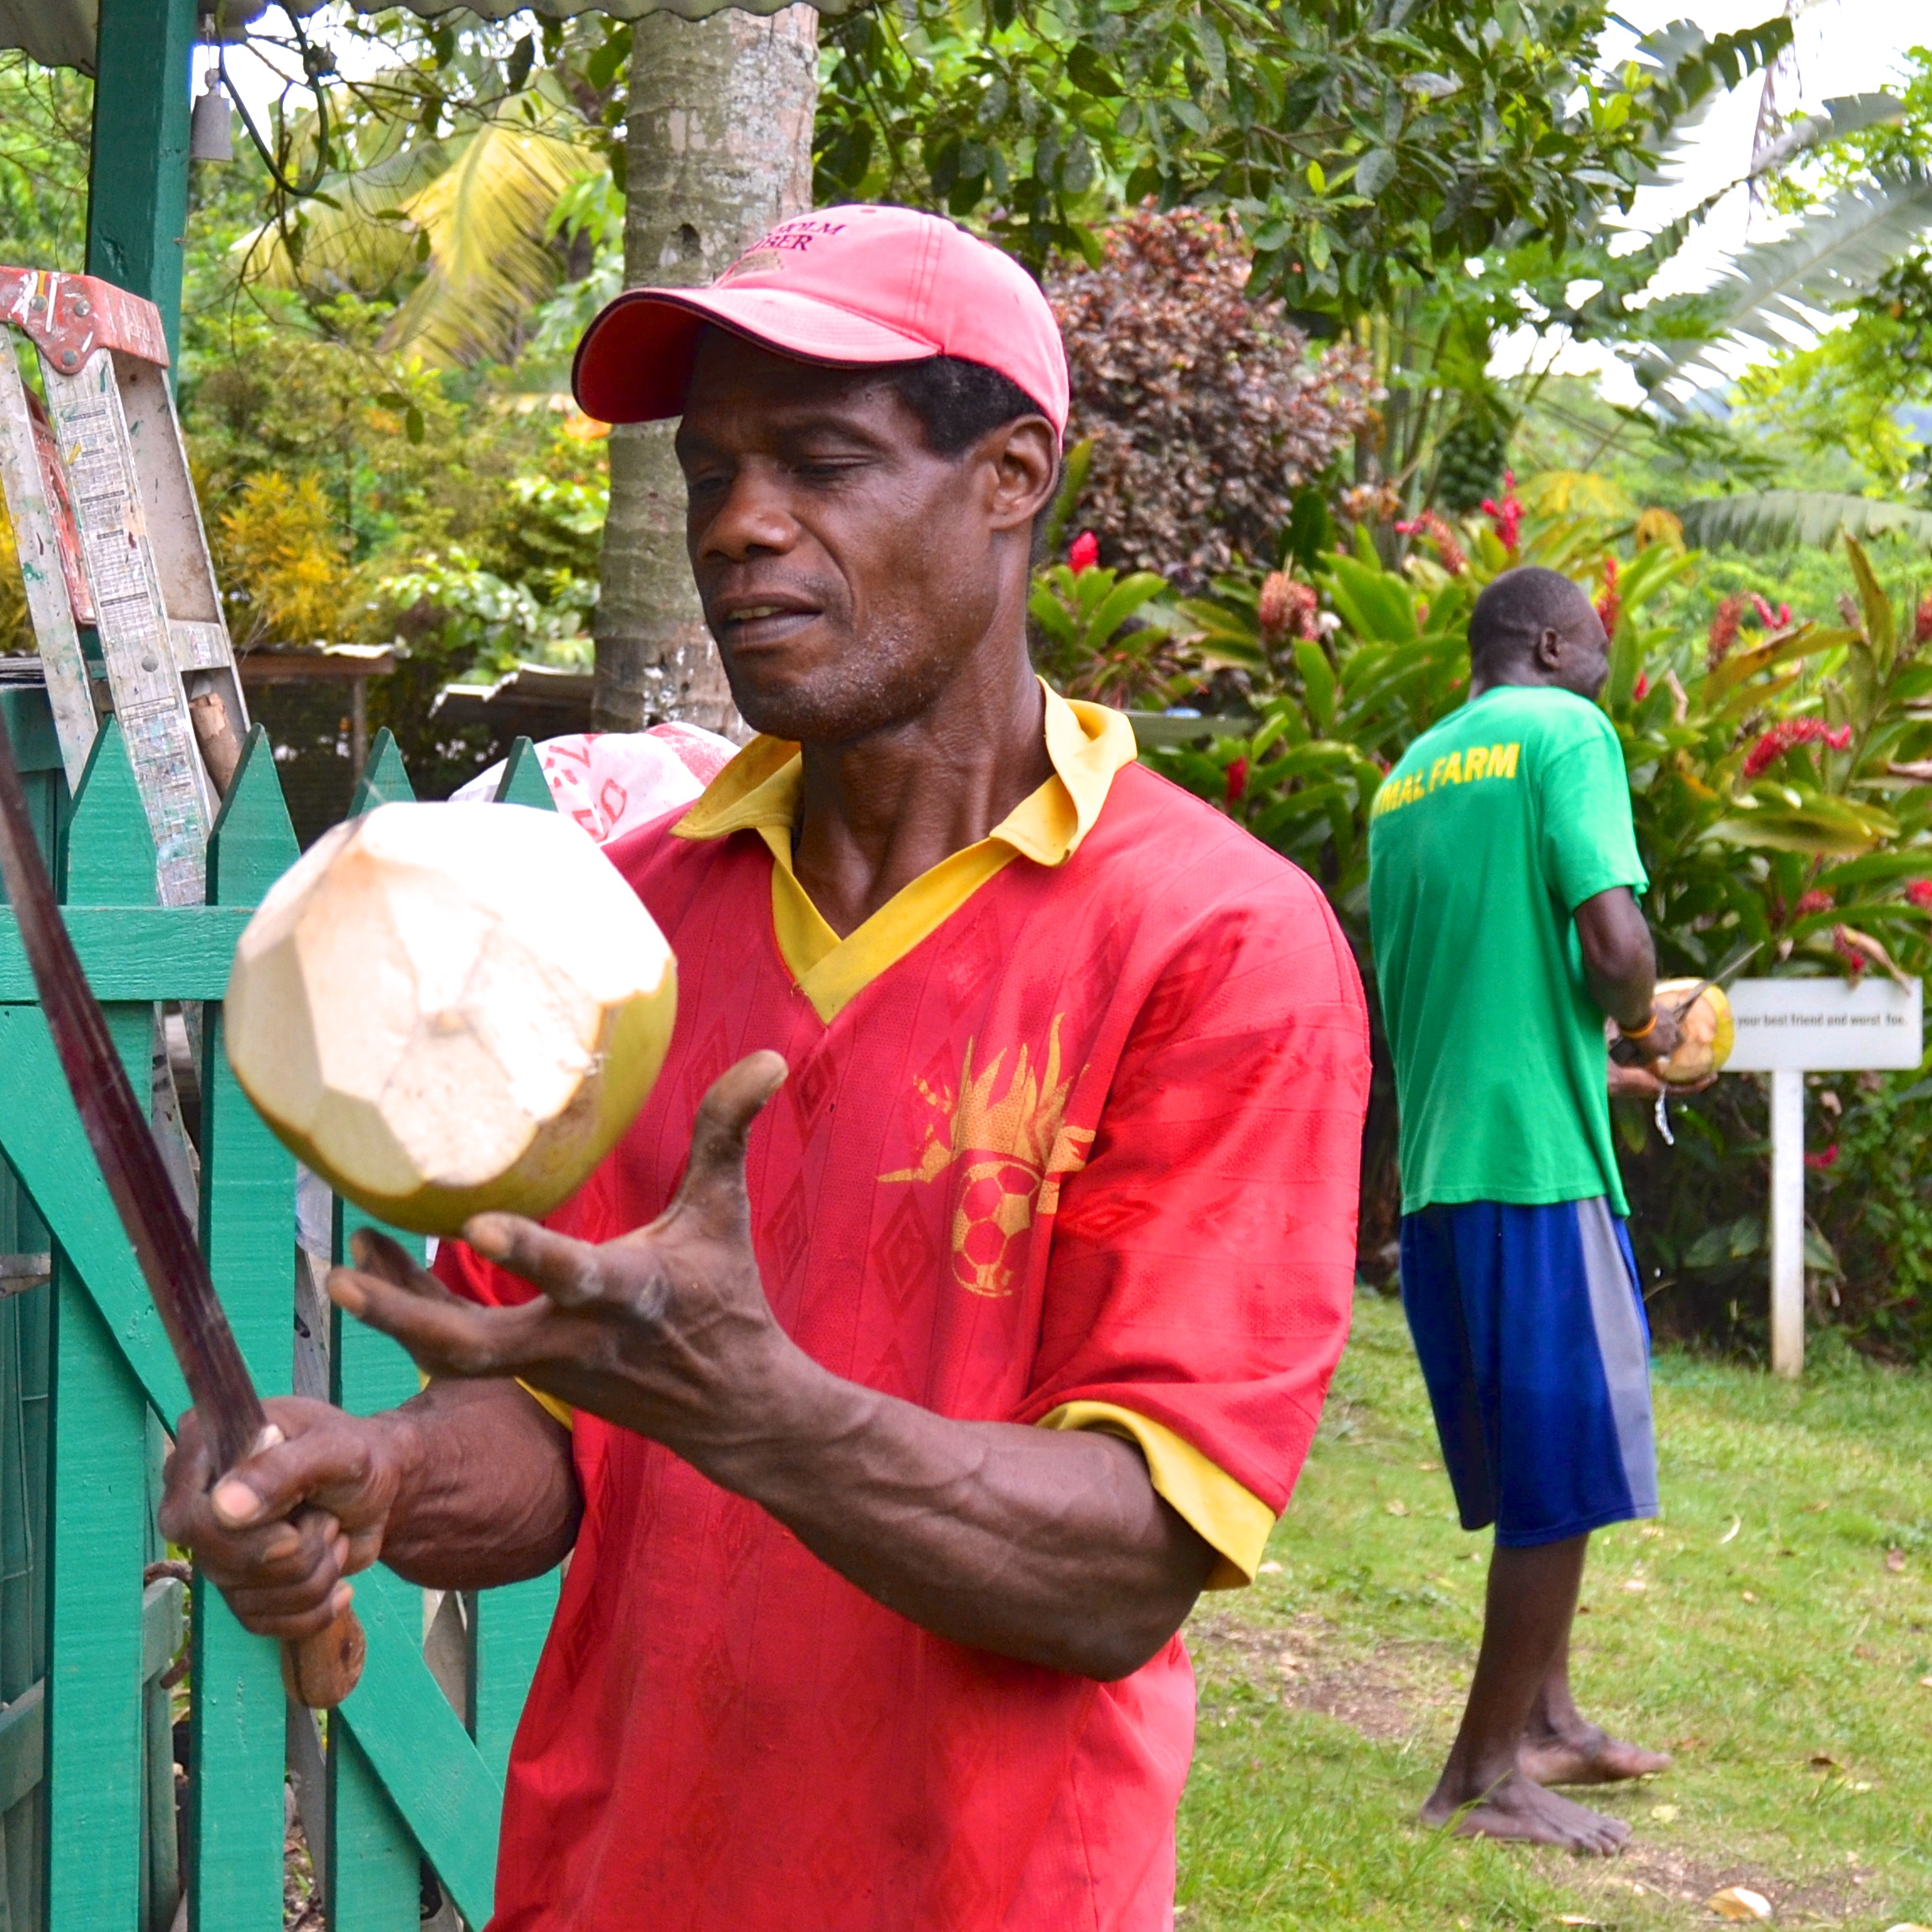 At the end of a tour, guests can enjoy fresh coconut water.